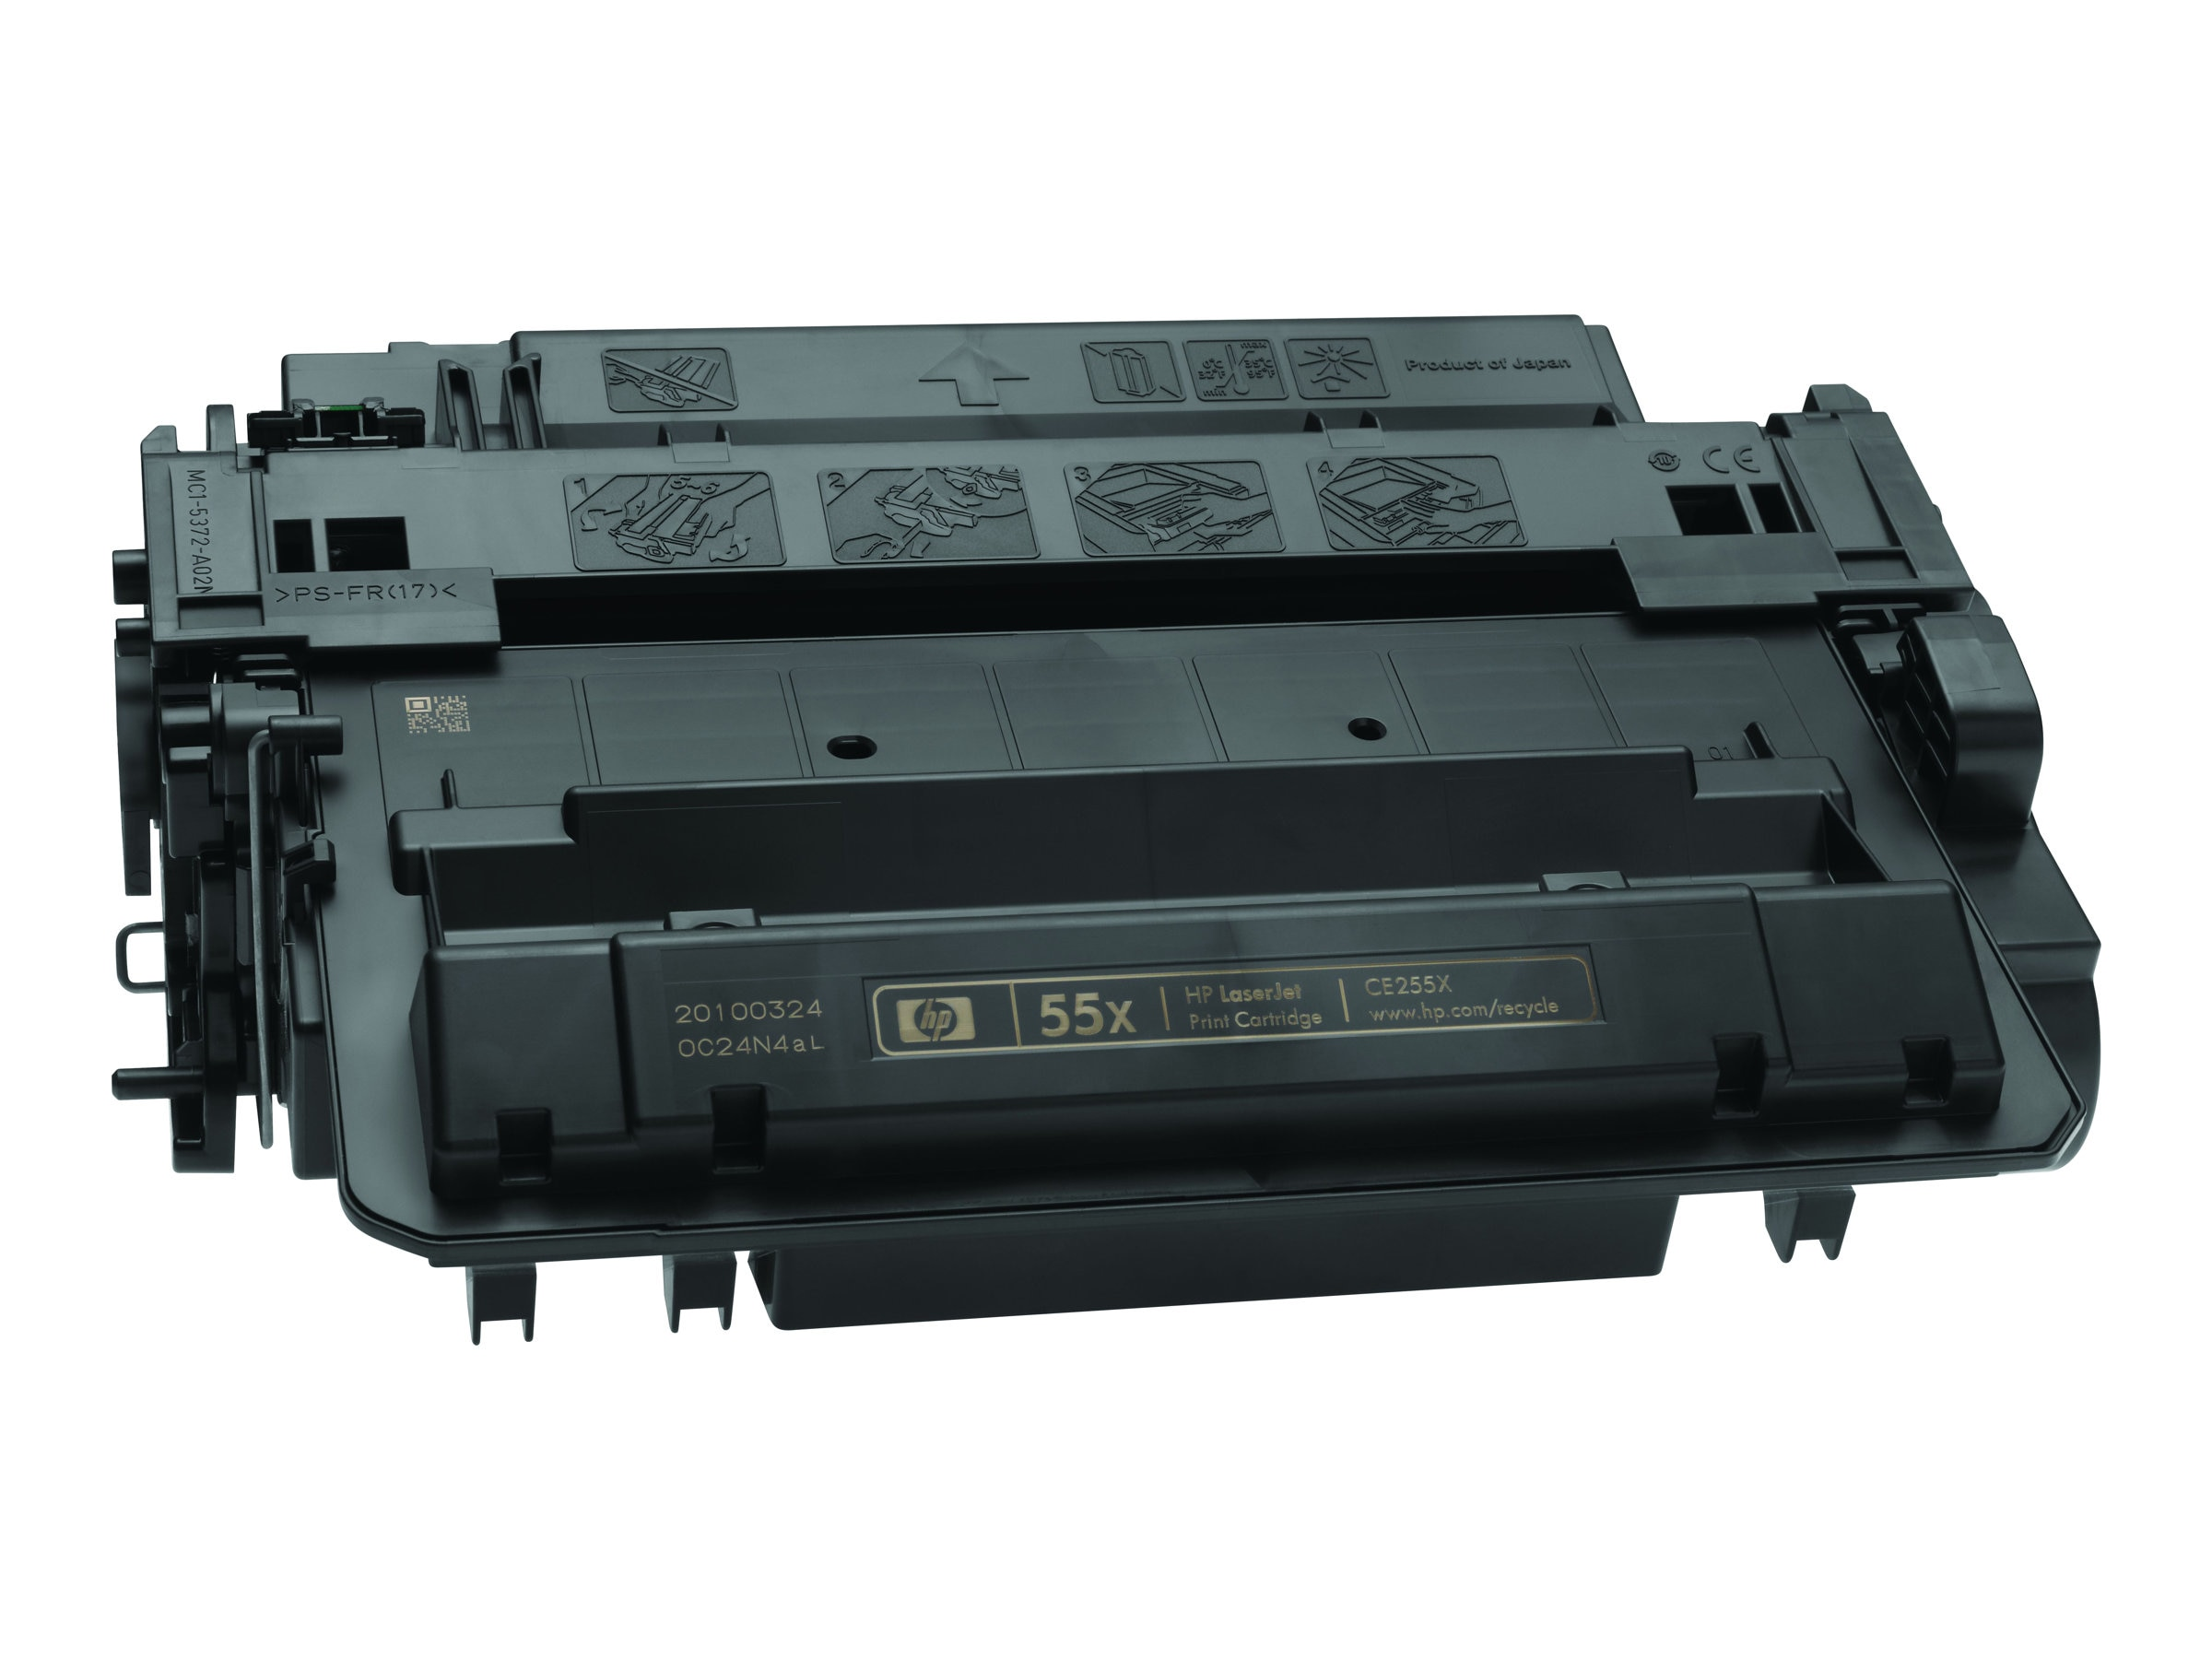 HP 55X (CE255X) High Yield Black Original LaserJet Toner Cartridge for HP LaserJet P3015 Series, CE255X, 9916541, Toner and Imaging Components